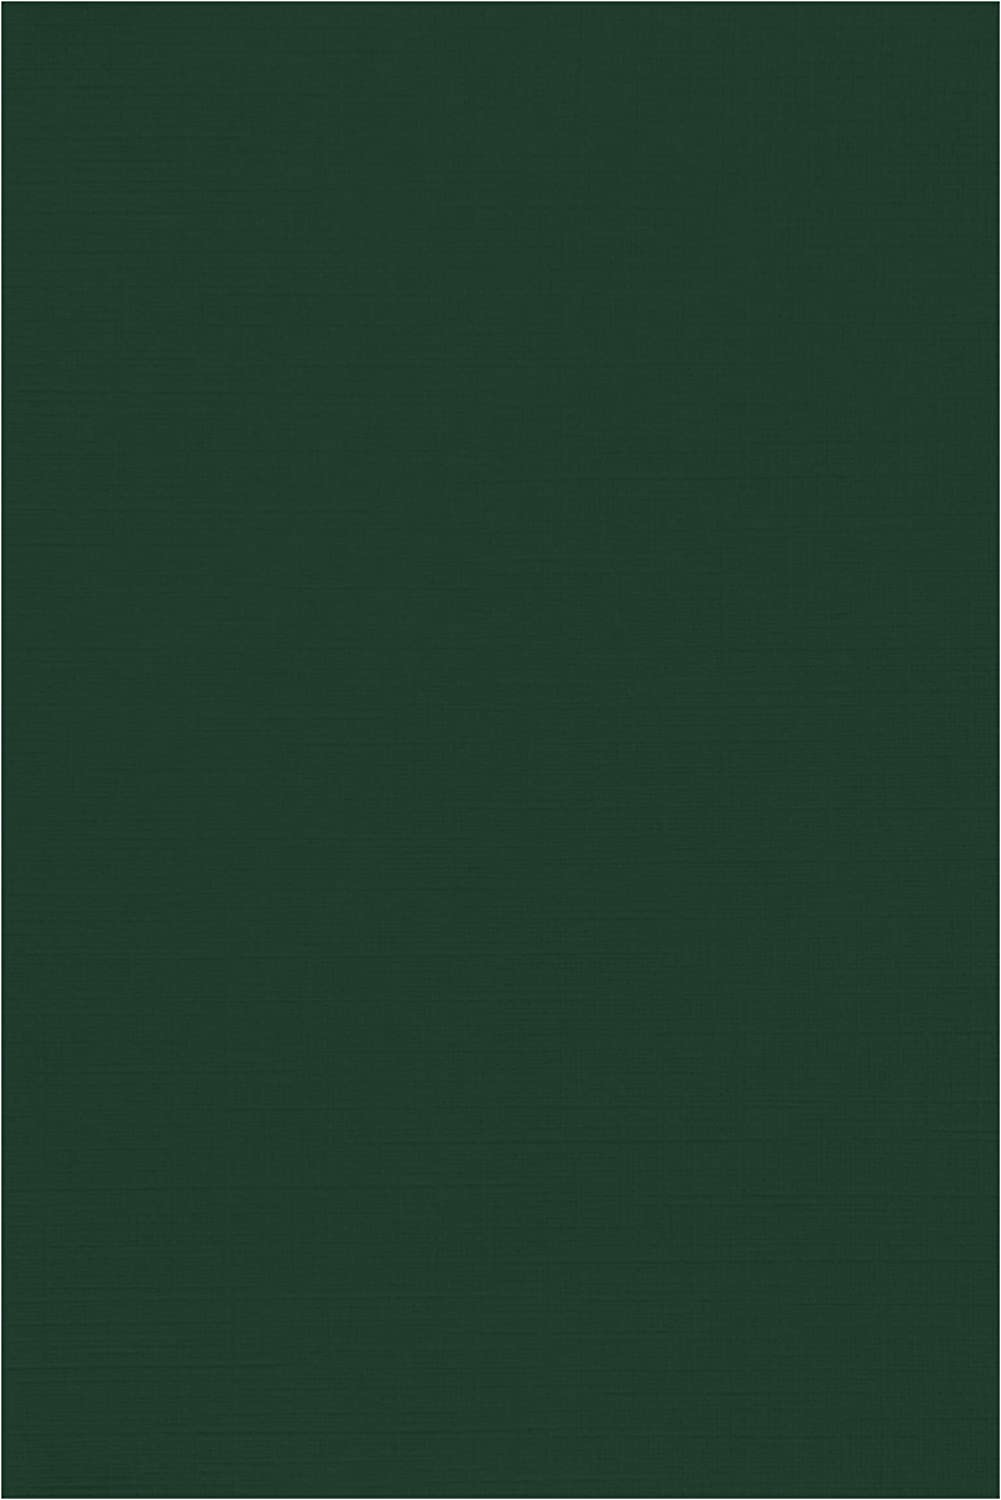 12 x 18 Cardstock - Green Selling and selling 50 for Holiday Qty. Linen Perfect Cheap mail order sales